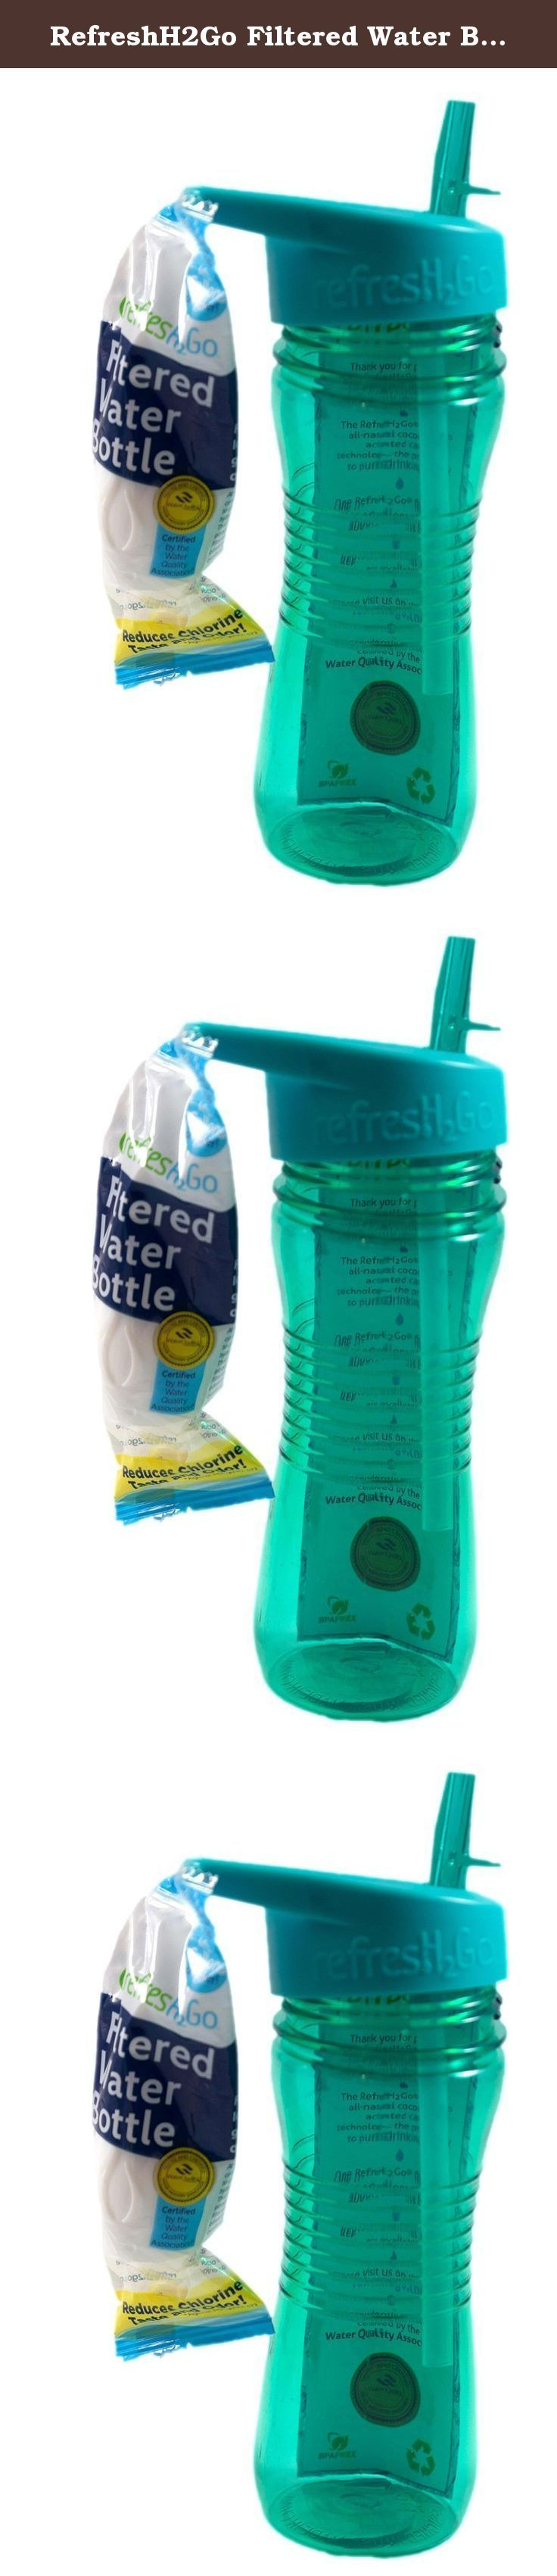 RefreshH2Go Filtered Water Bottle, Colors Vary, 2-Pack. Staying hydrated is one of the most important things for maintaining a healthy body. Whether you go on a run or just head off for a long day at work, having easy access to water is the best thing you can do for yourself. Maintaining the right level of hydration helps to minimize headaches, manage muscle cramps, and prevent dry skin. This filtered water bottle features a filter to clean your water to deliver great-tasting, pure H2O…